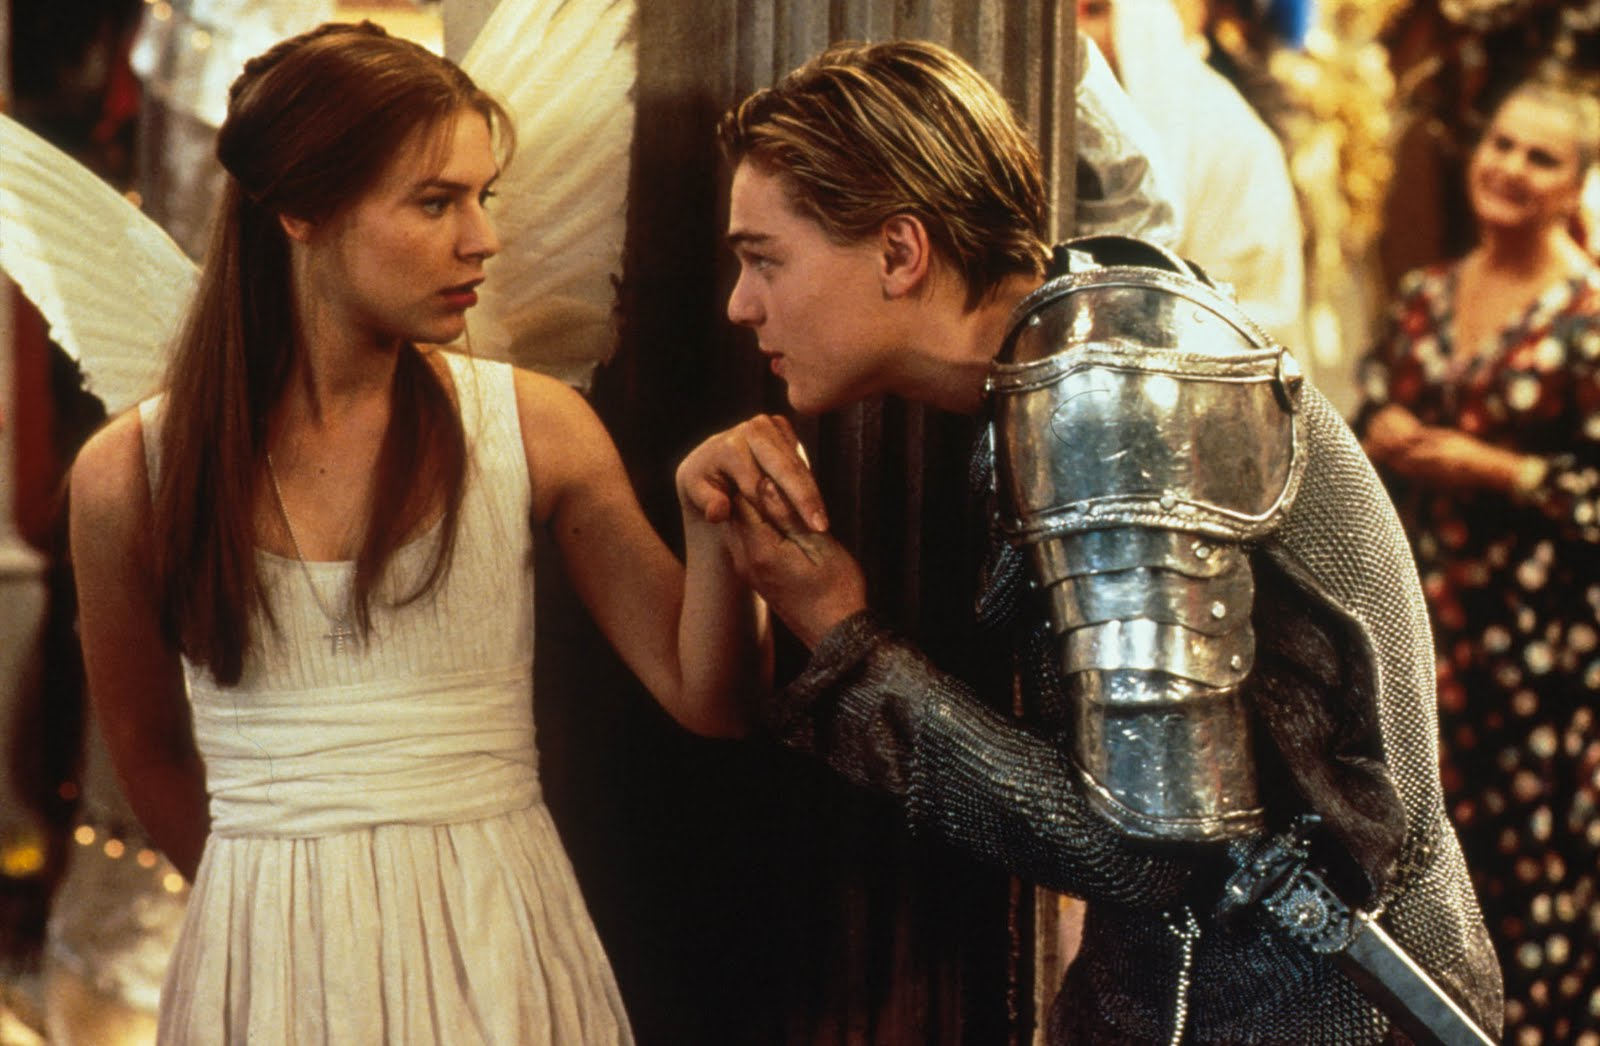 Romeo + Juliet | Chris and Elizabeth Watch Movies